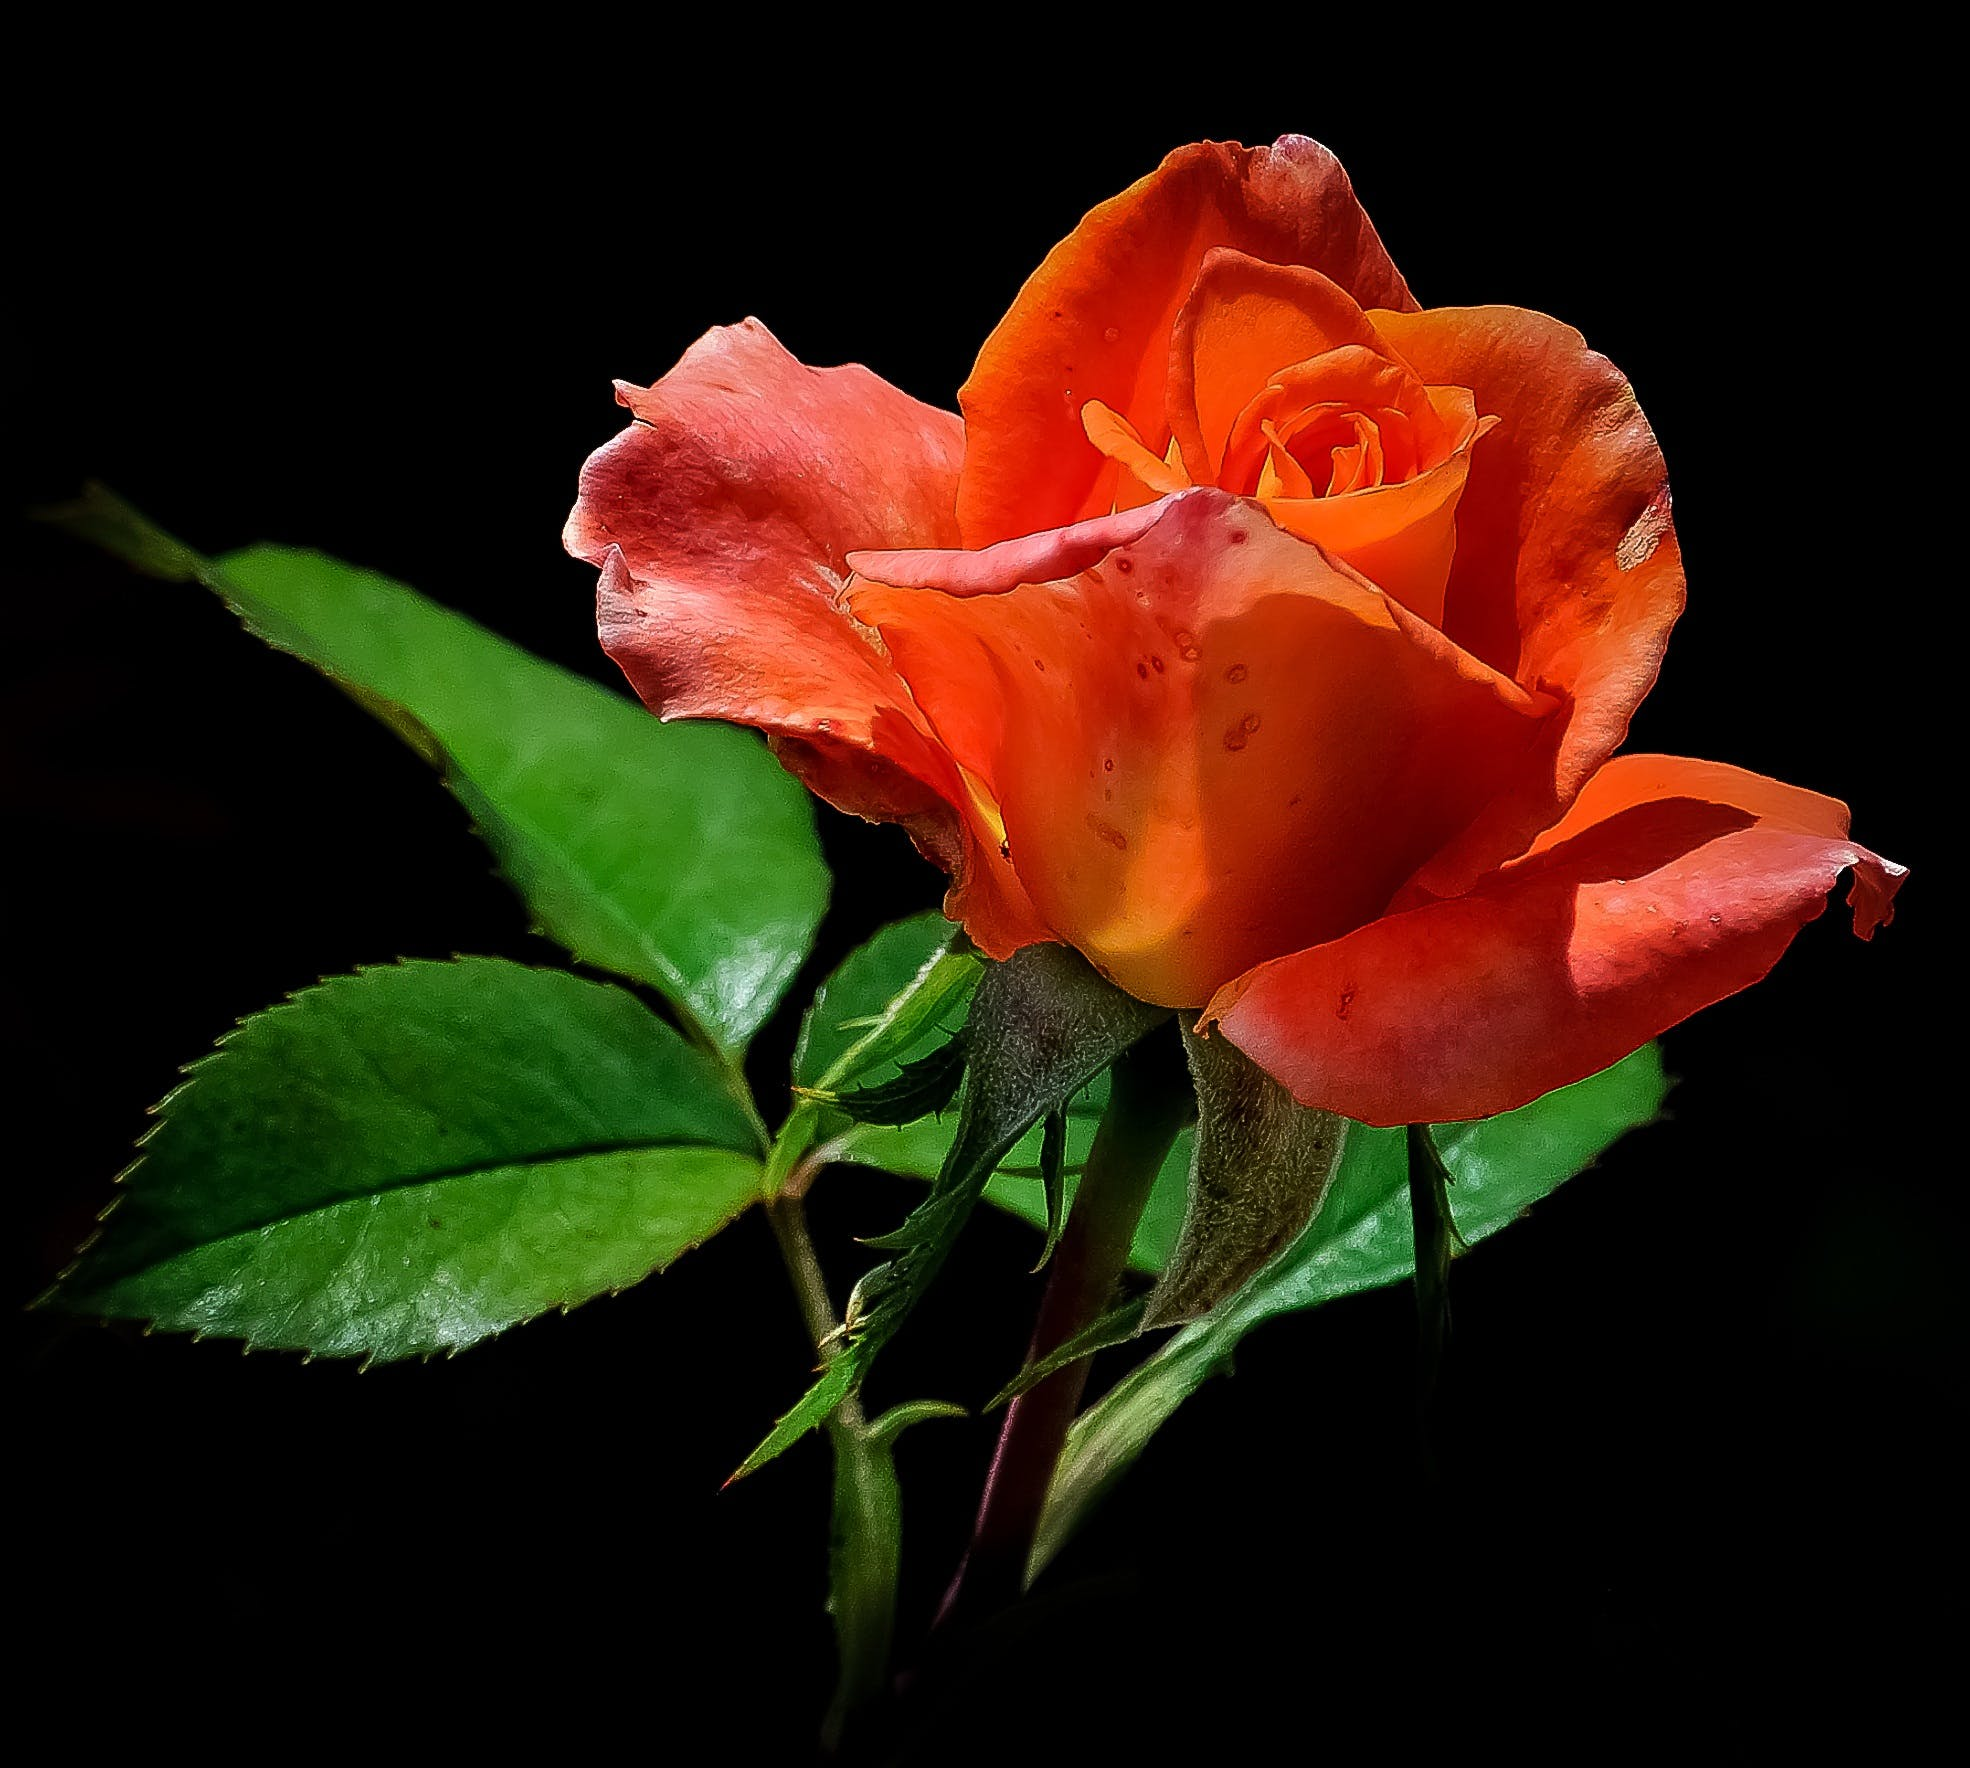 Close-up Photo of Red Rose